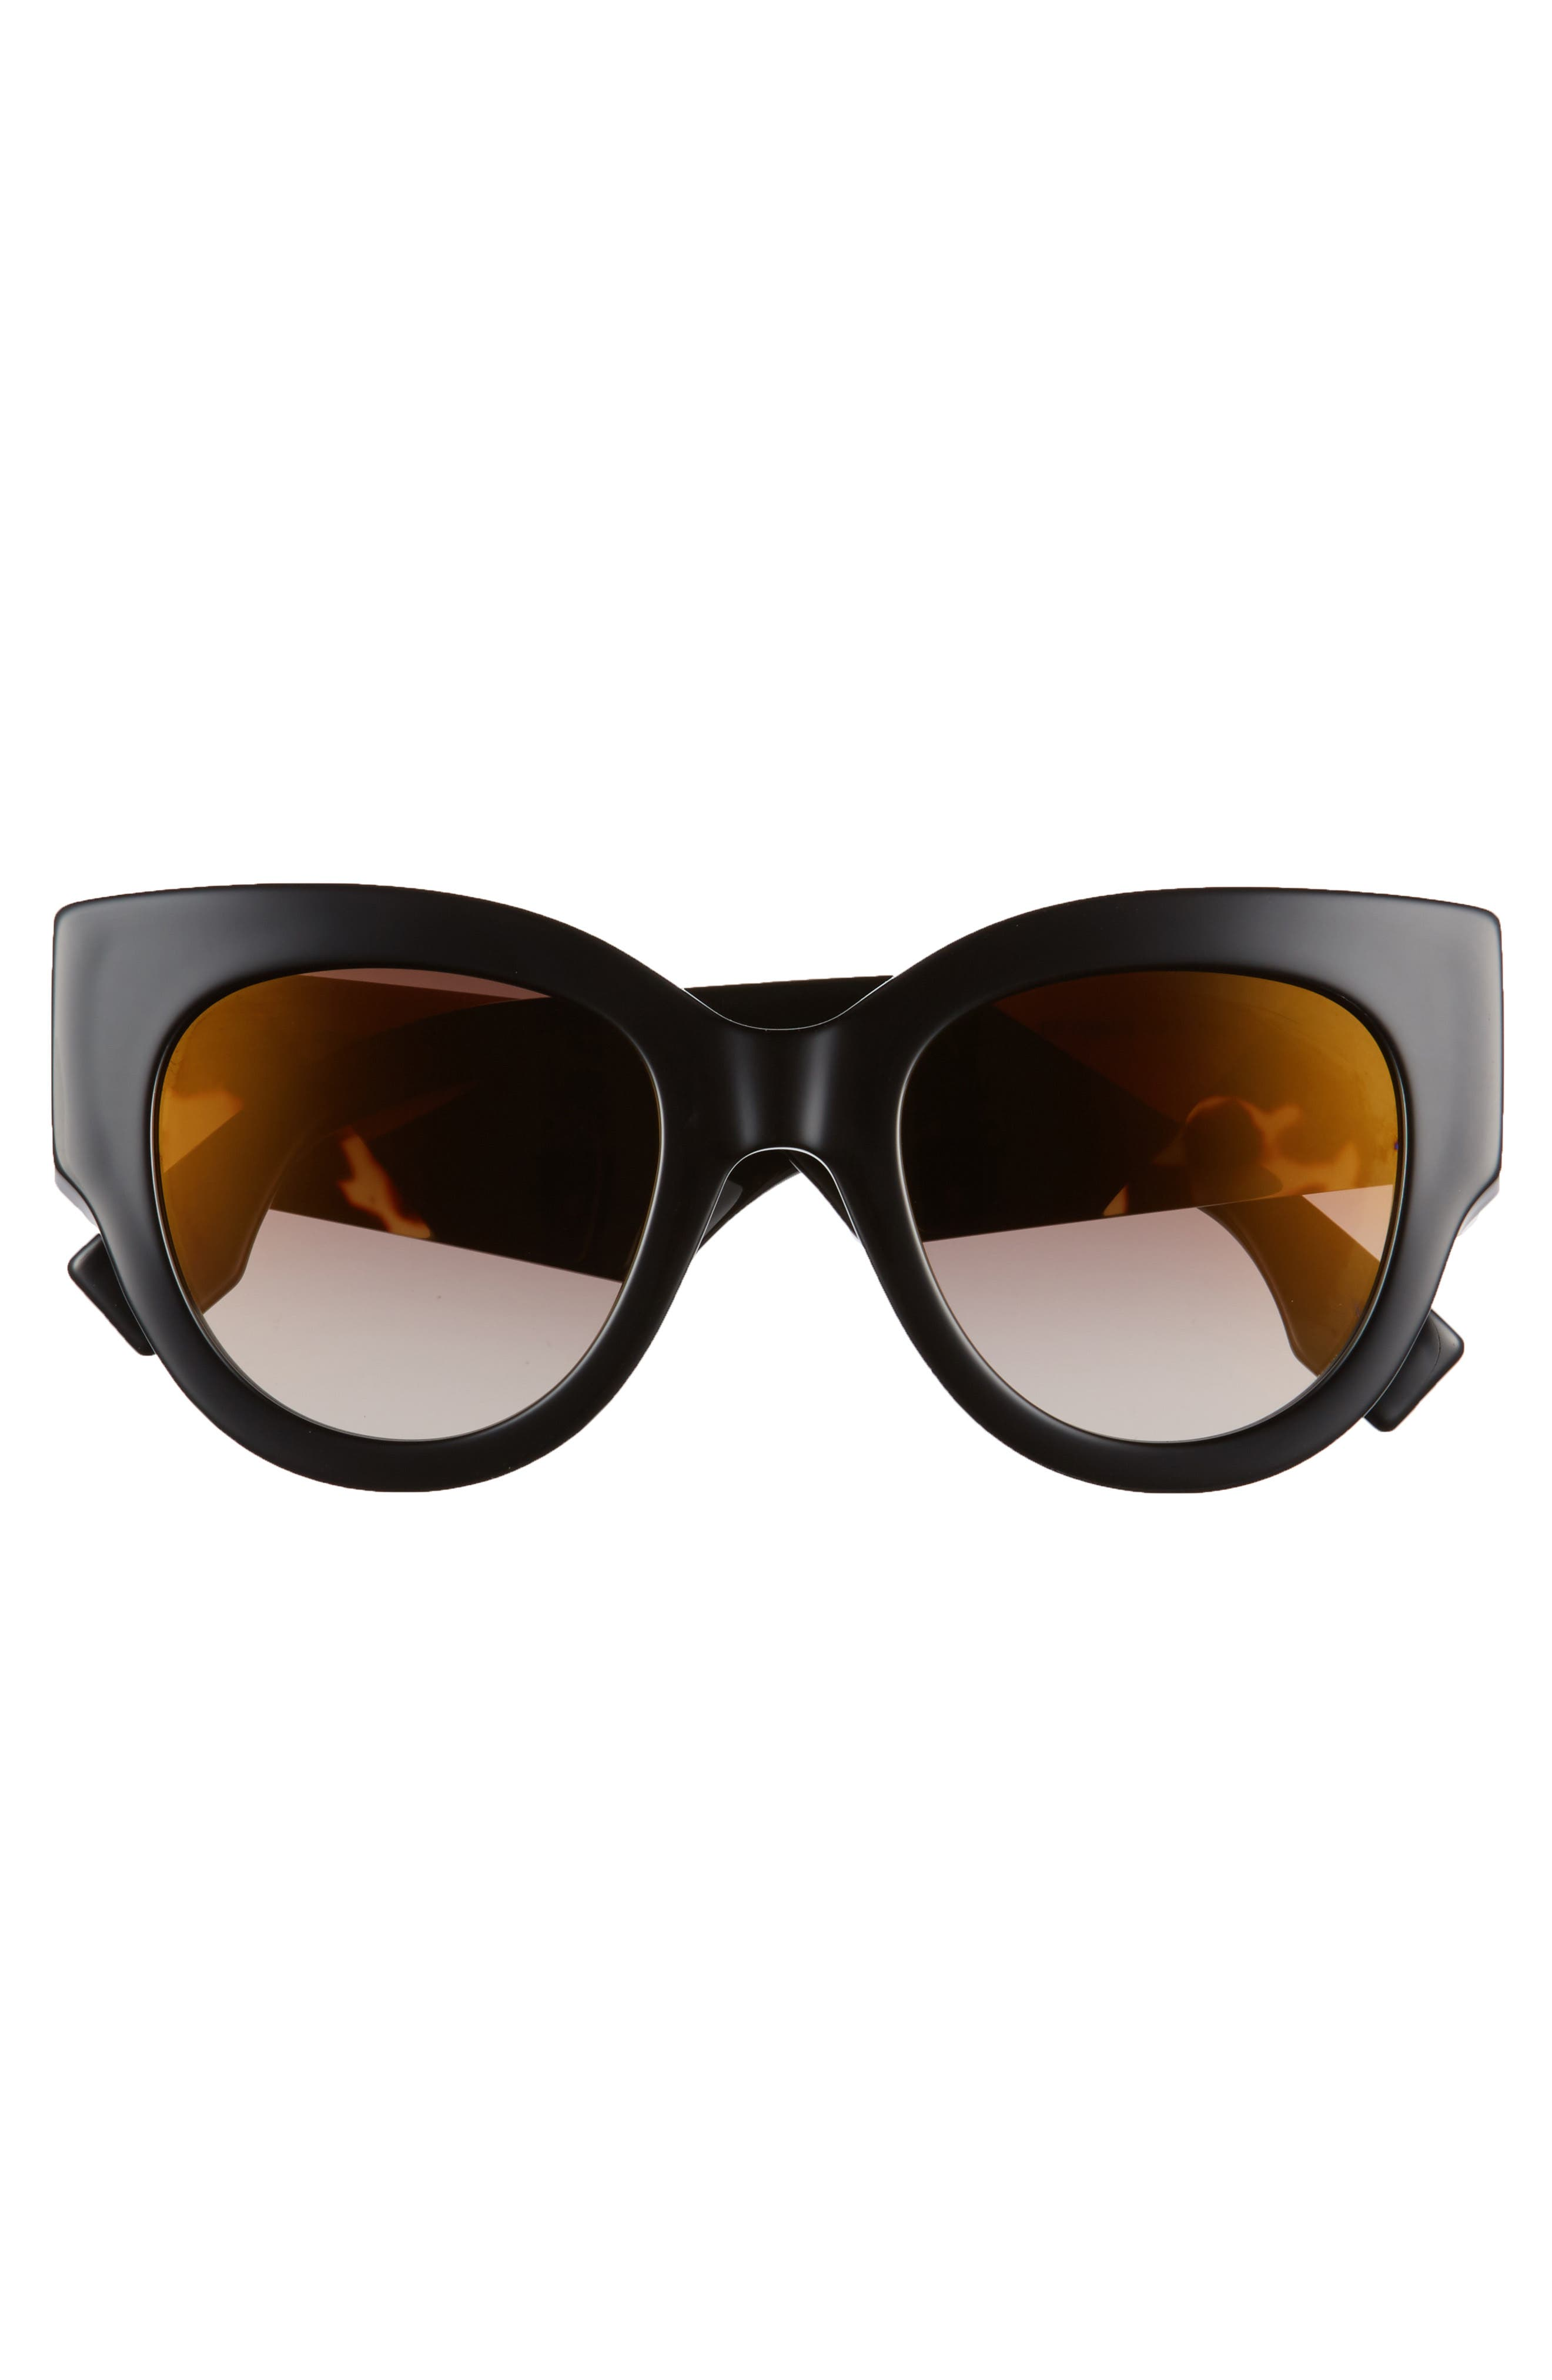 Alternate Image 3  - Fendi 51mm Cat Eye Sunglasses